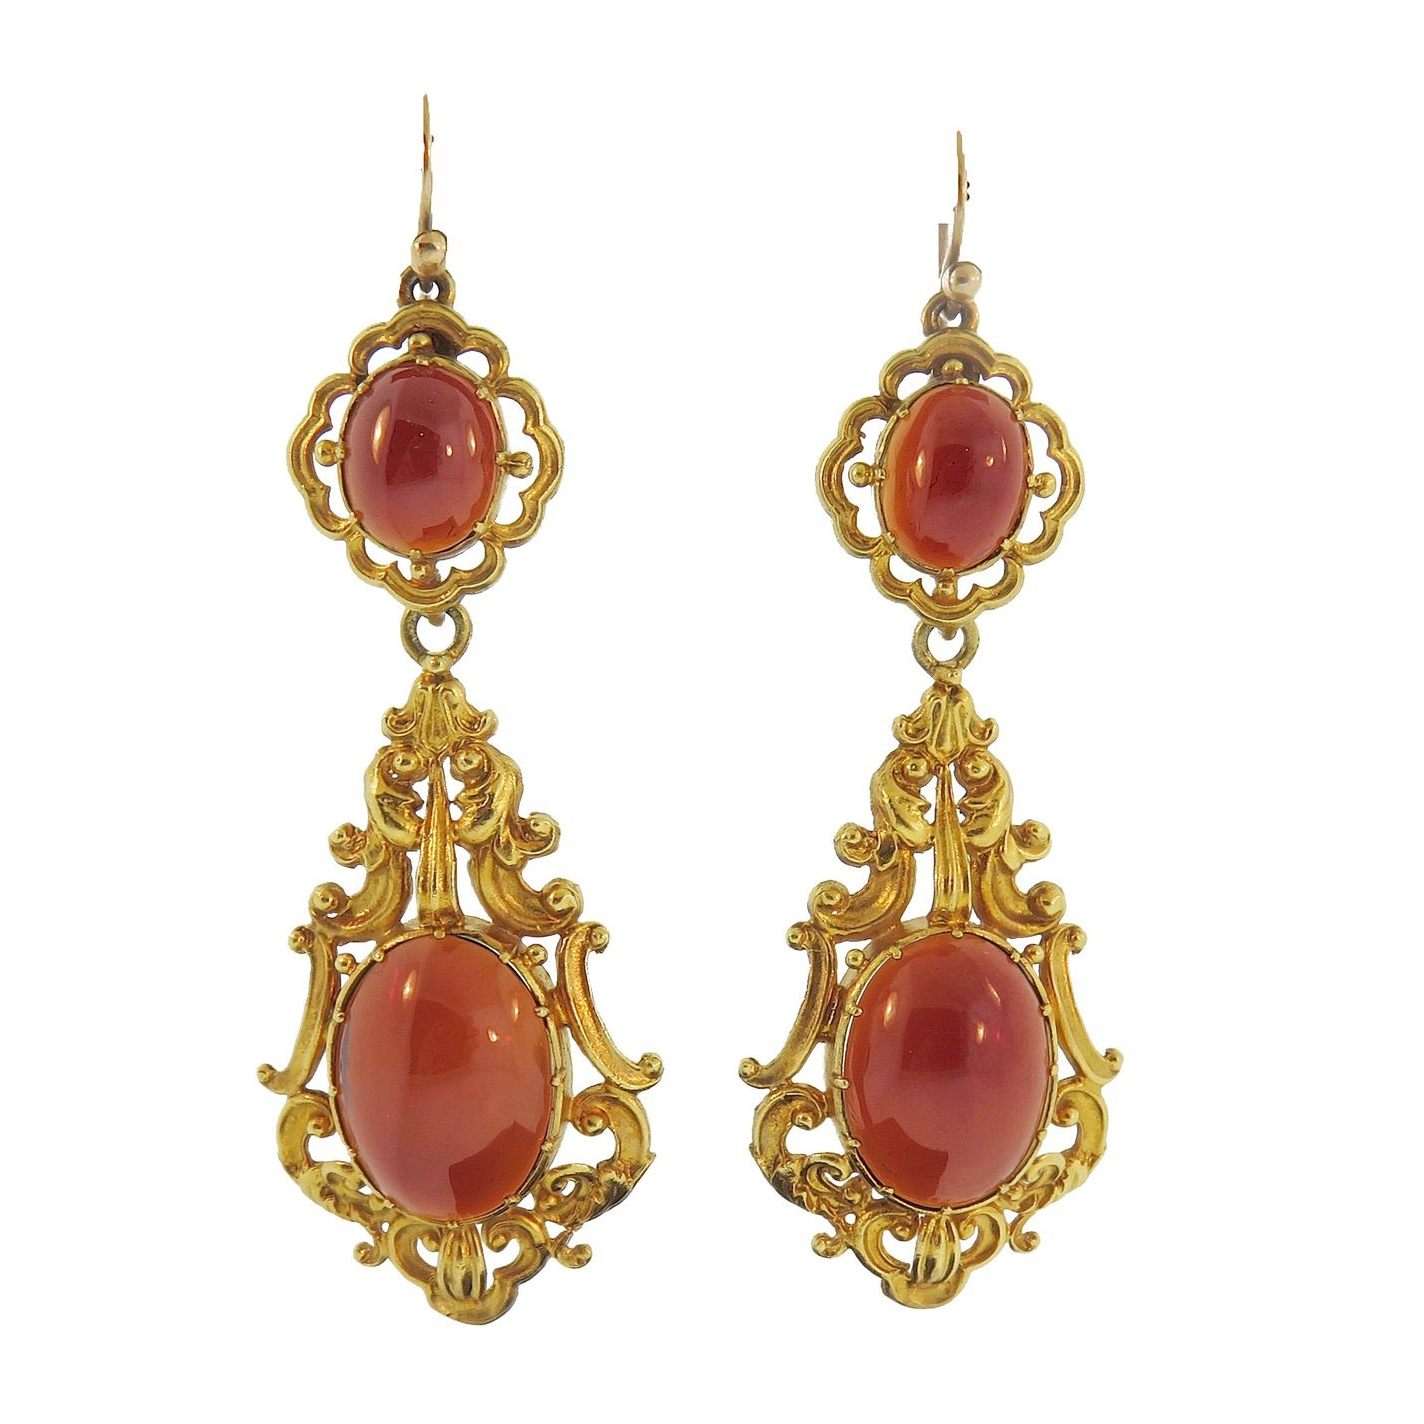 Antique Garnet and Gold Pendant Earrings